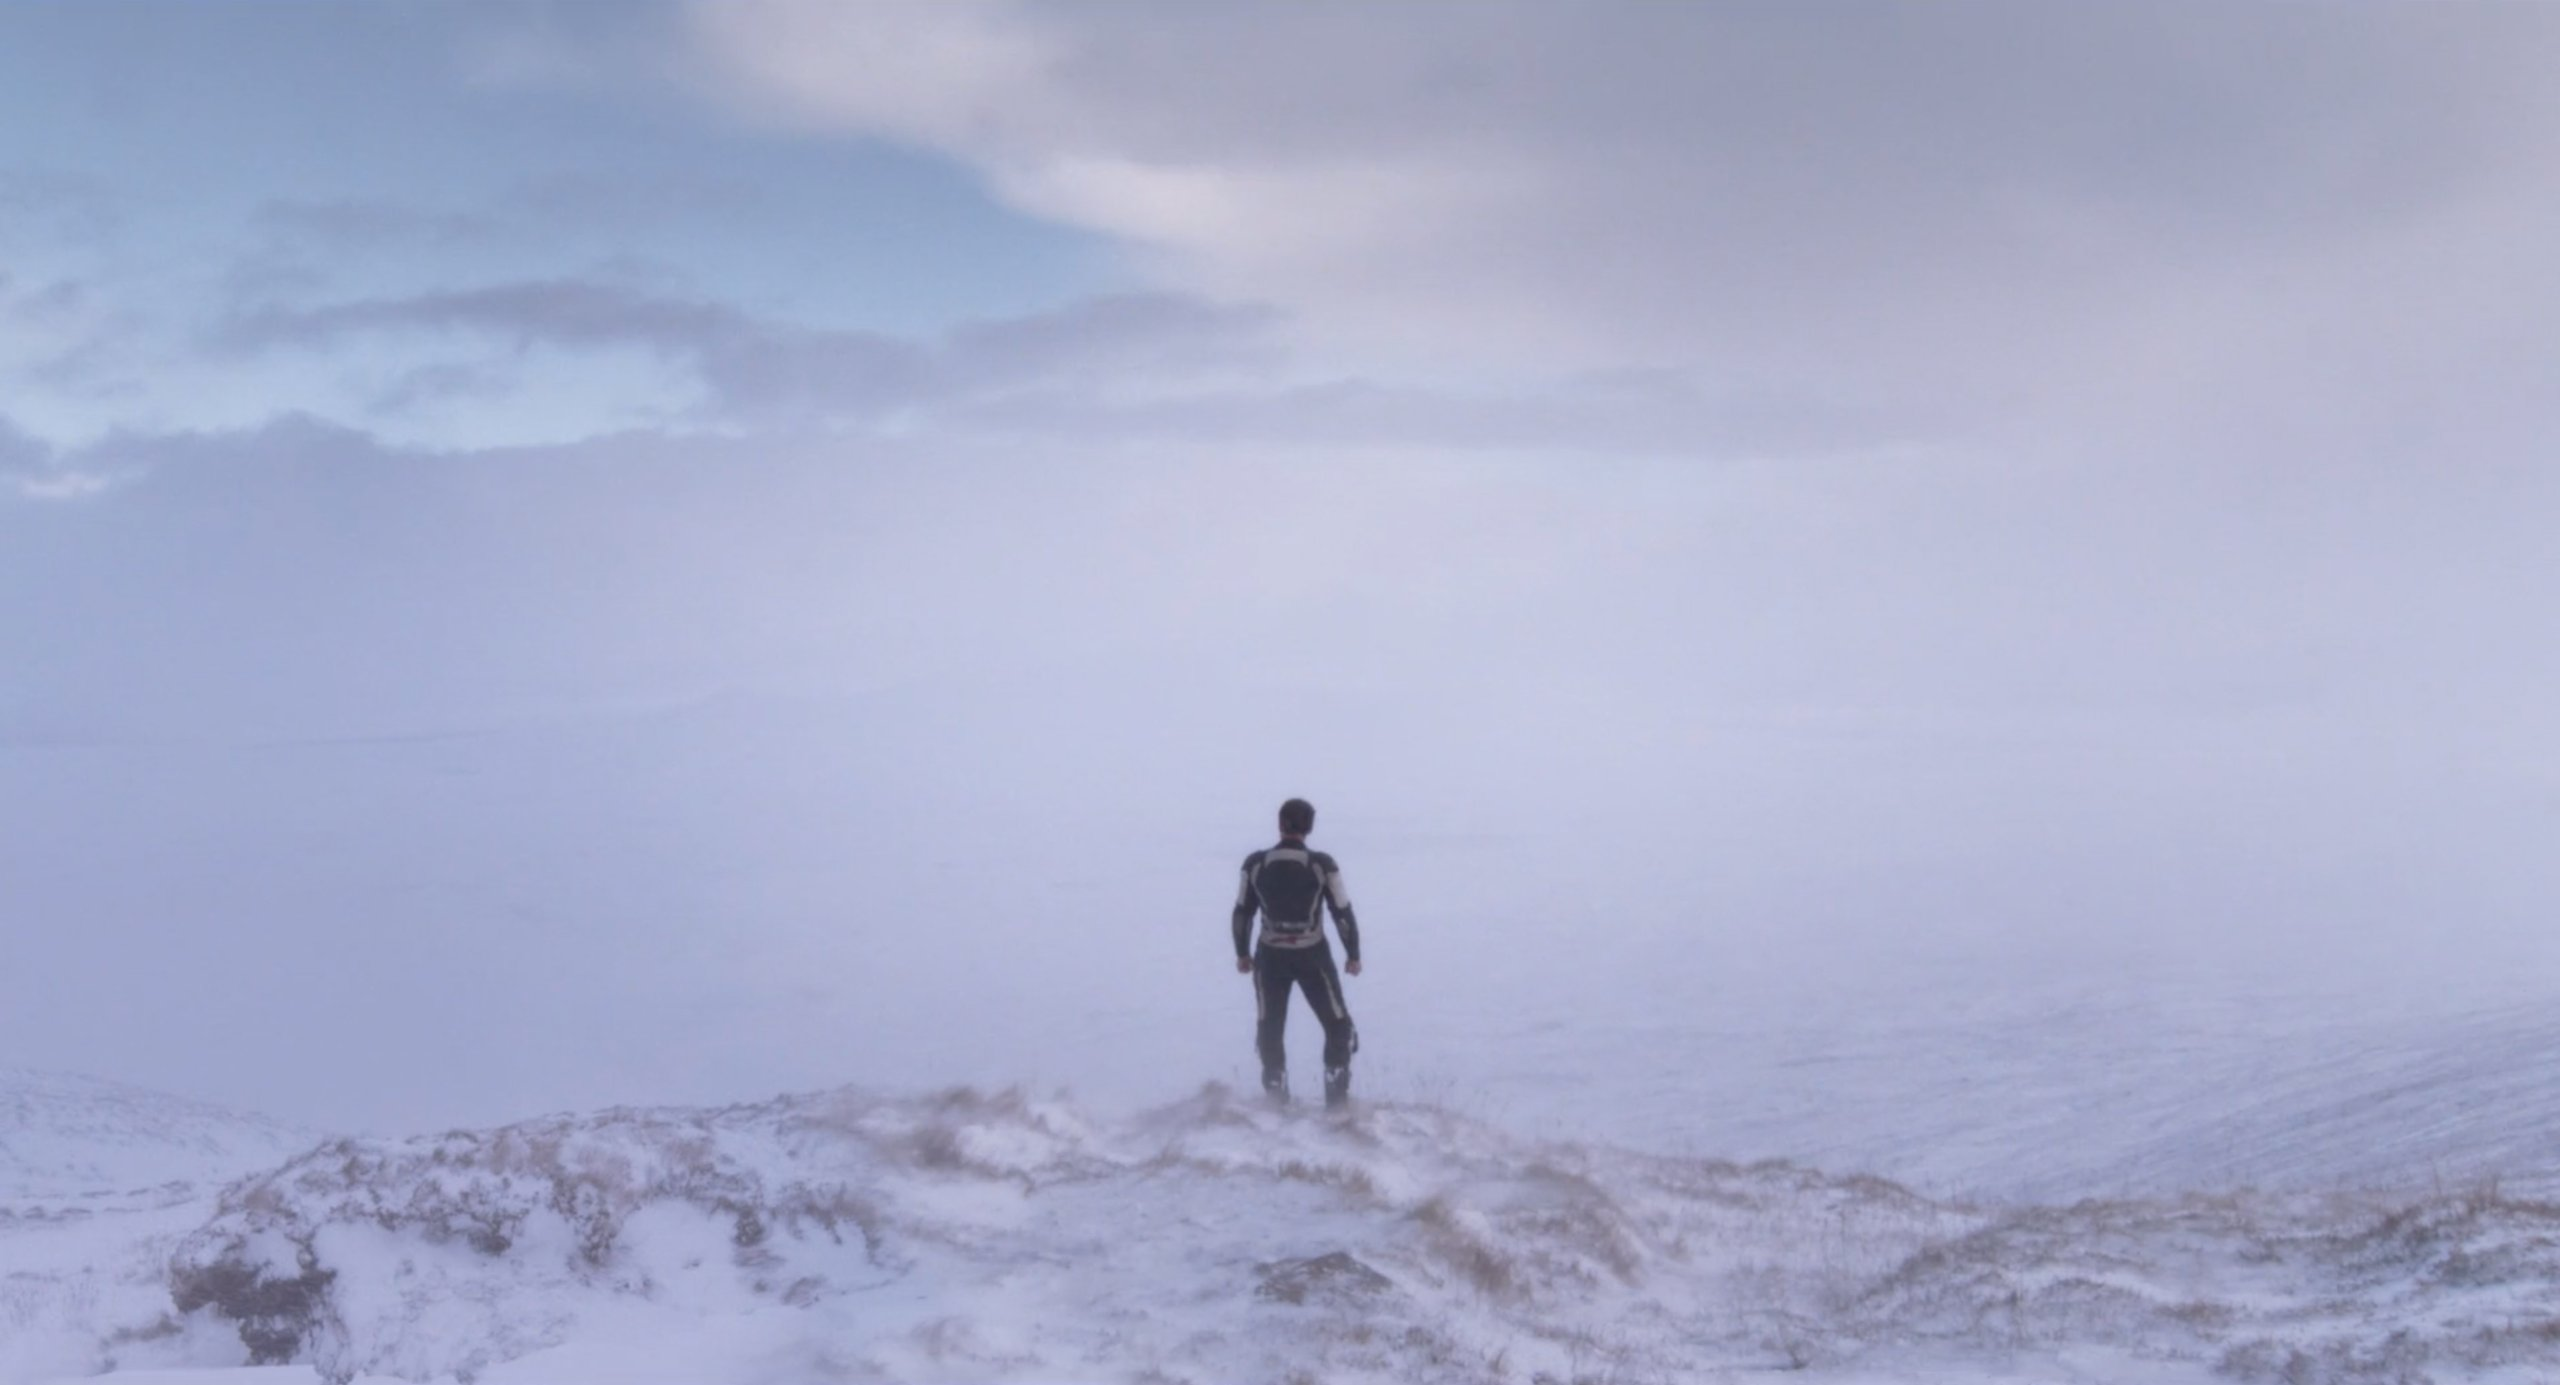 The Motorcycle Man looks over a snowy landscape while searching for The Woman in Under the Skin